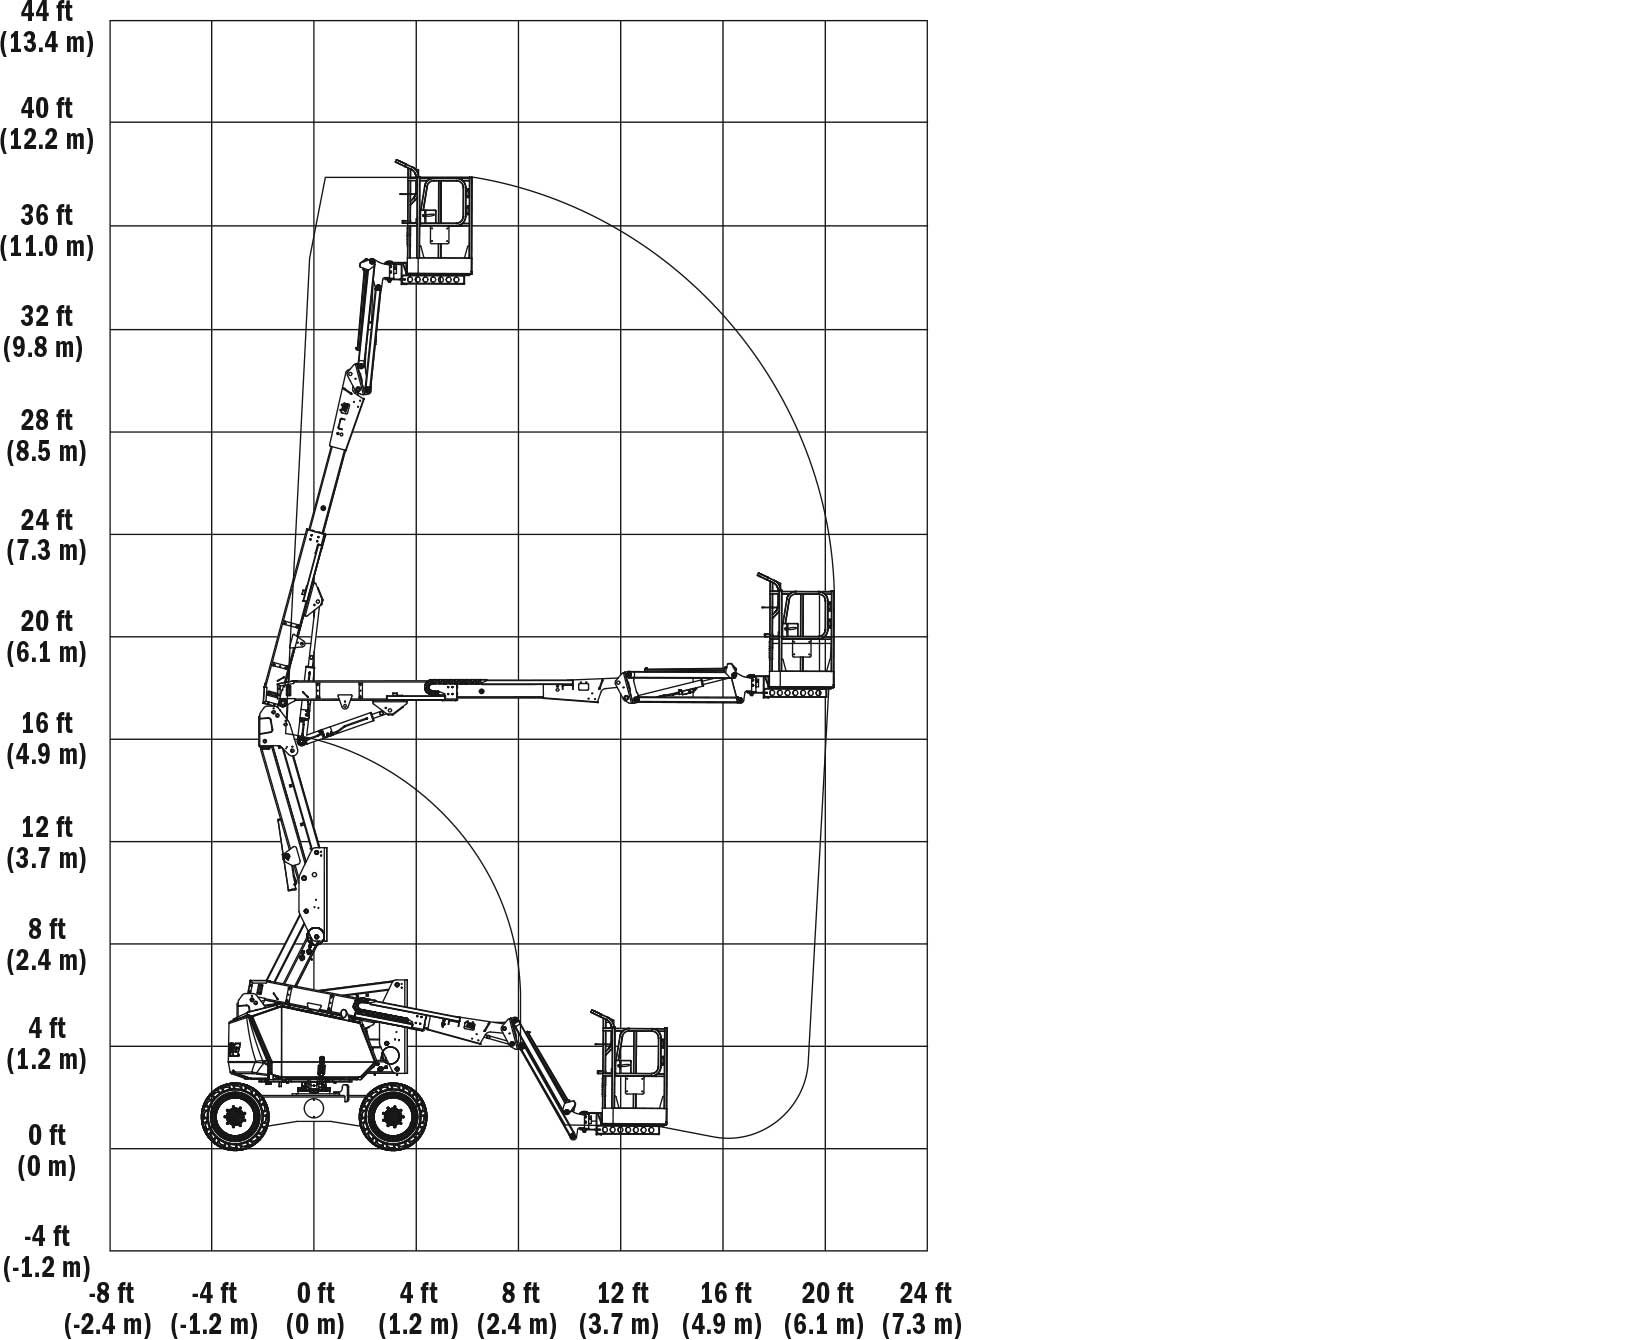 Articulating Boom Lifts 340AJ Reach Diagram